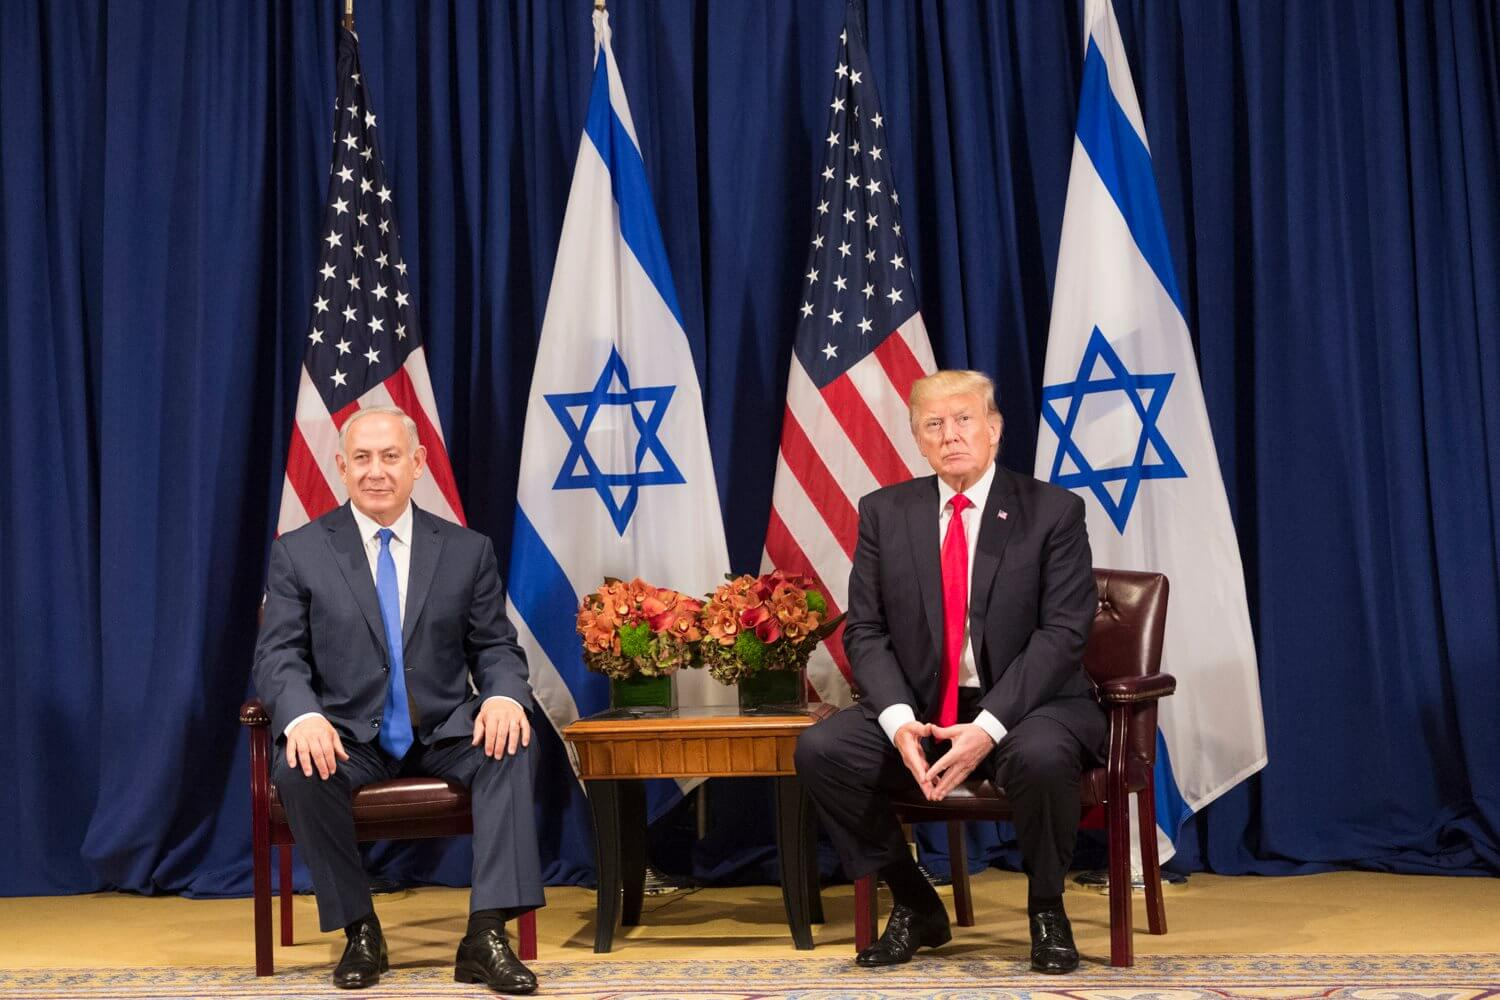 A call to pray for leaders President Trump and Prime Minister Netanyahu